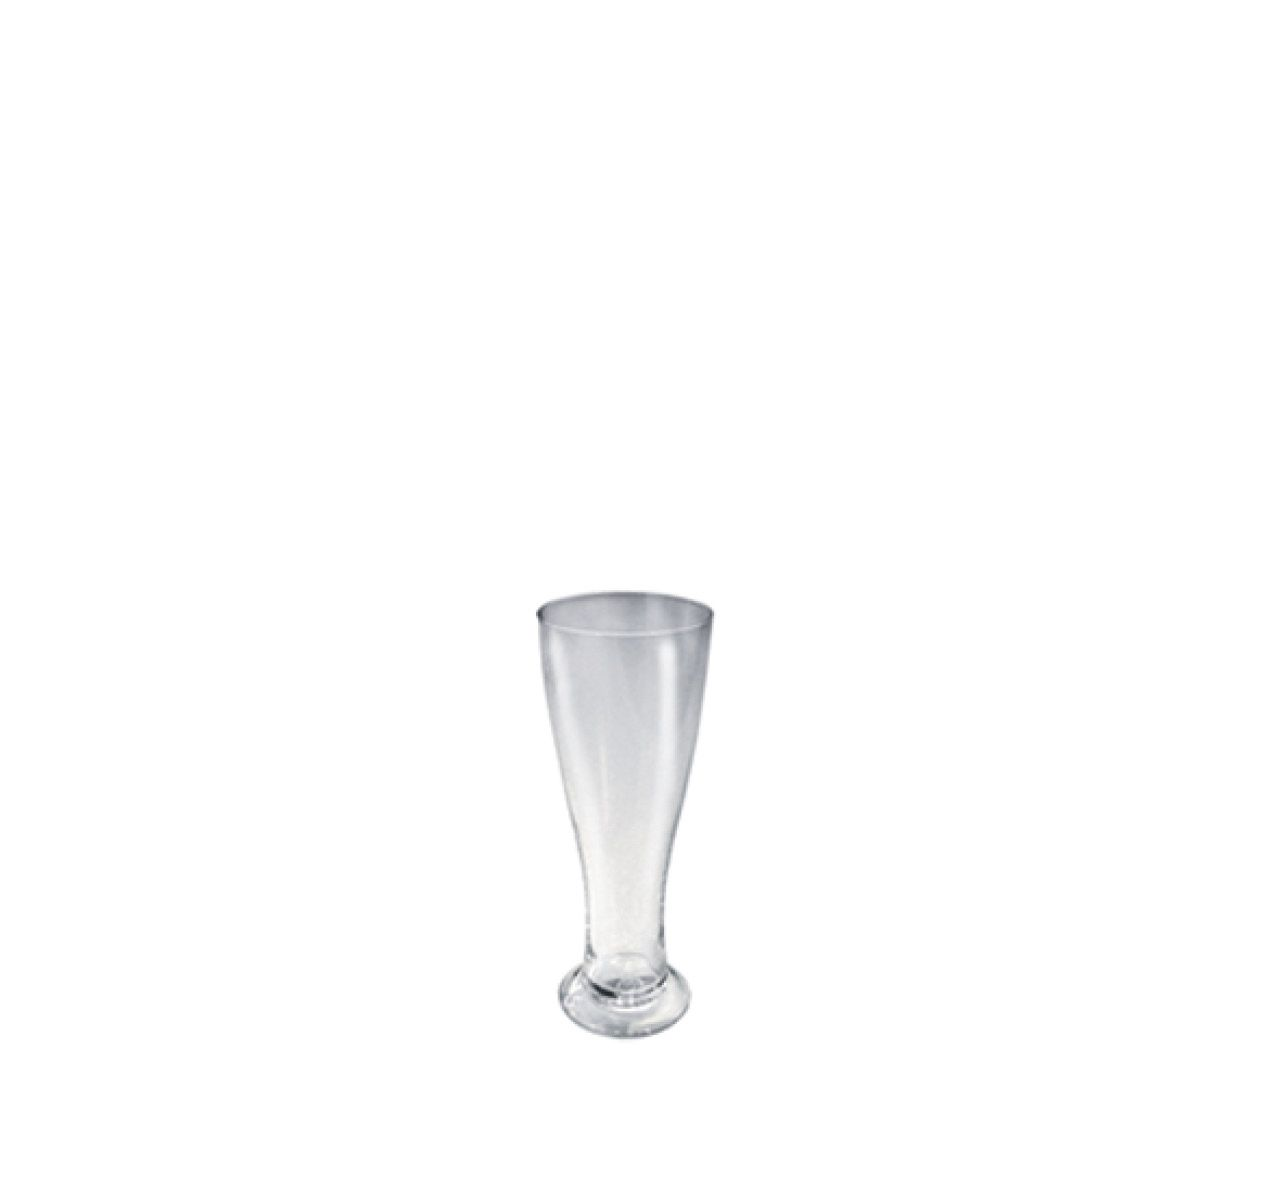 The White Snow - Champagne Flute Set of 6 Glass